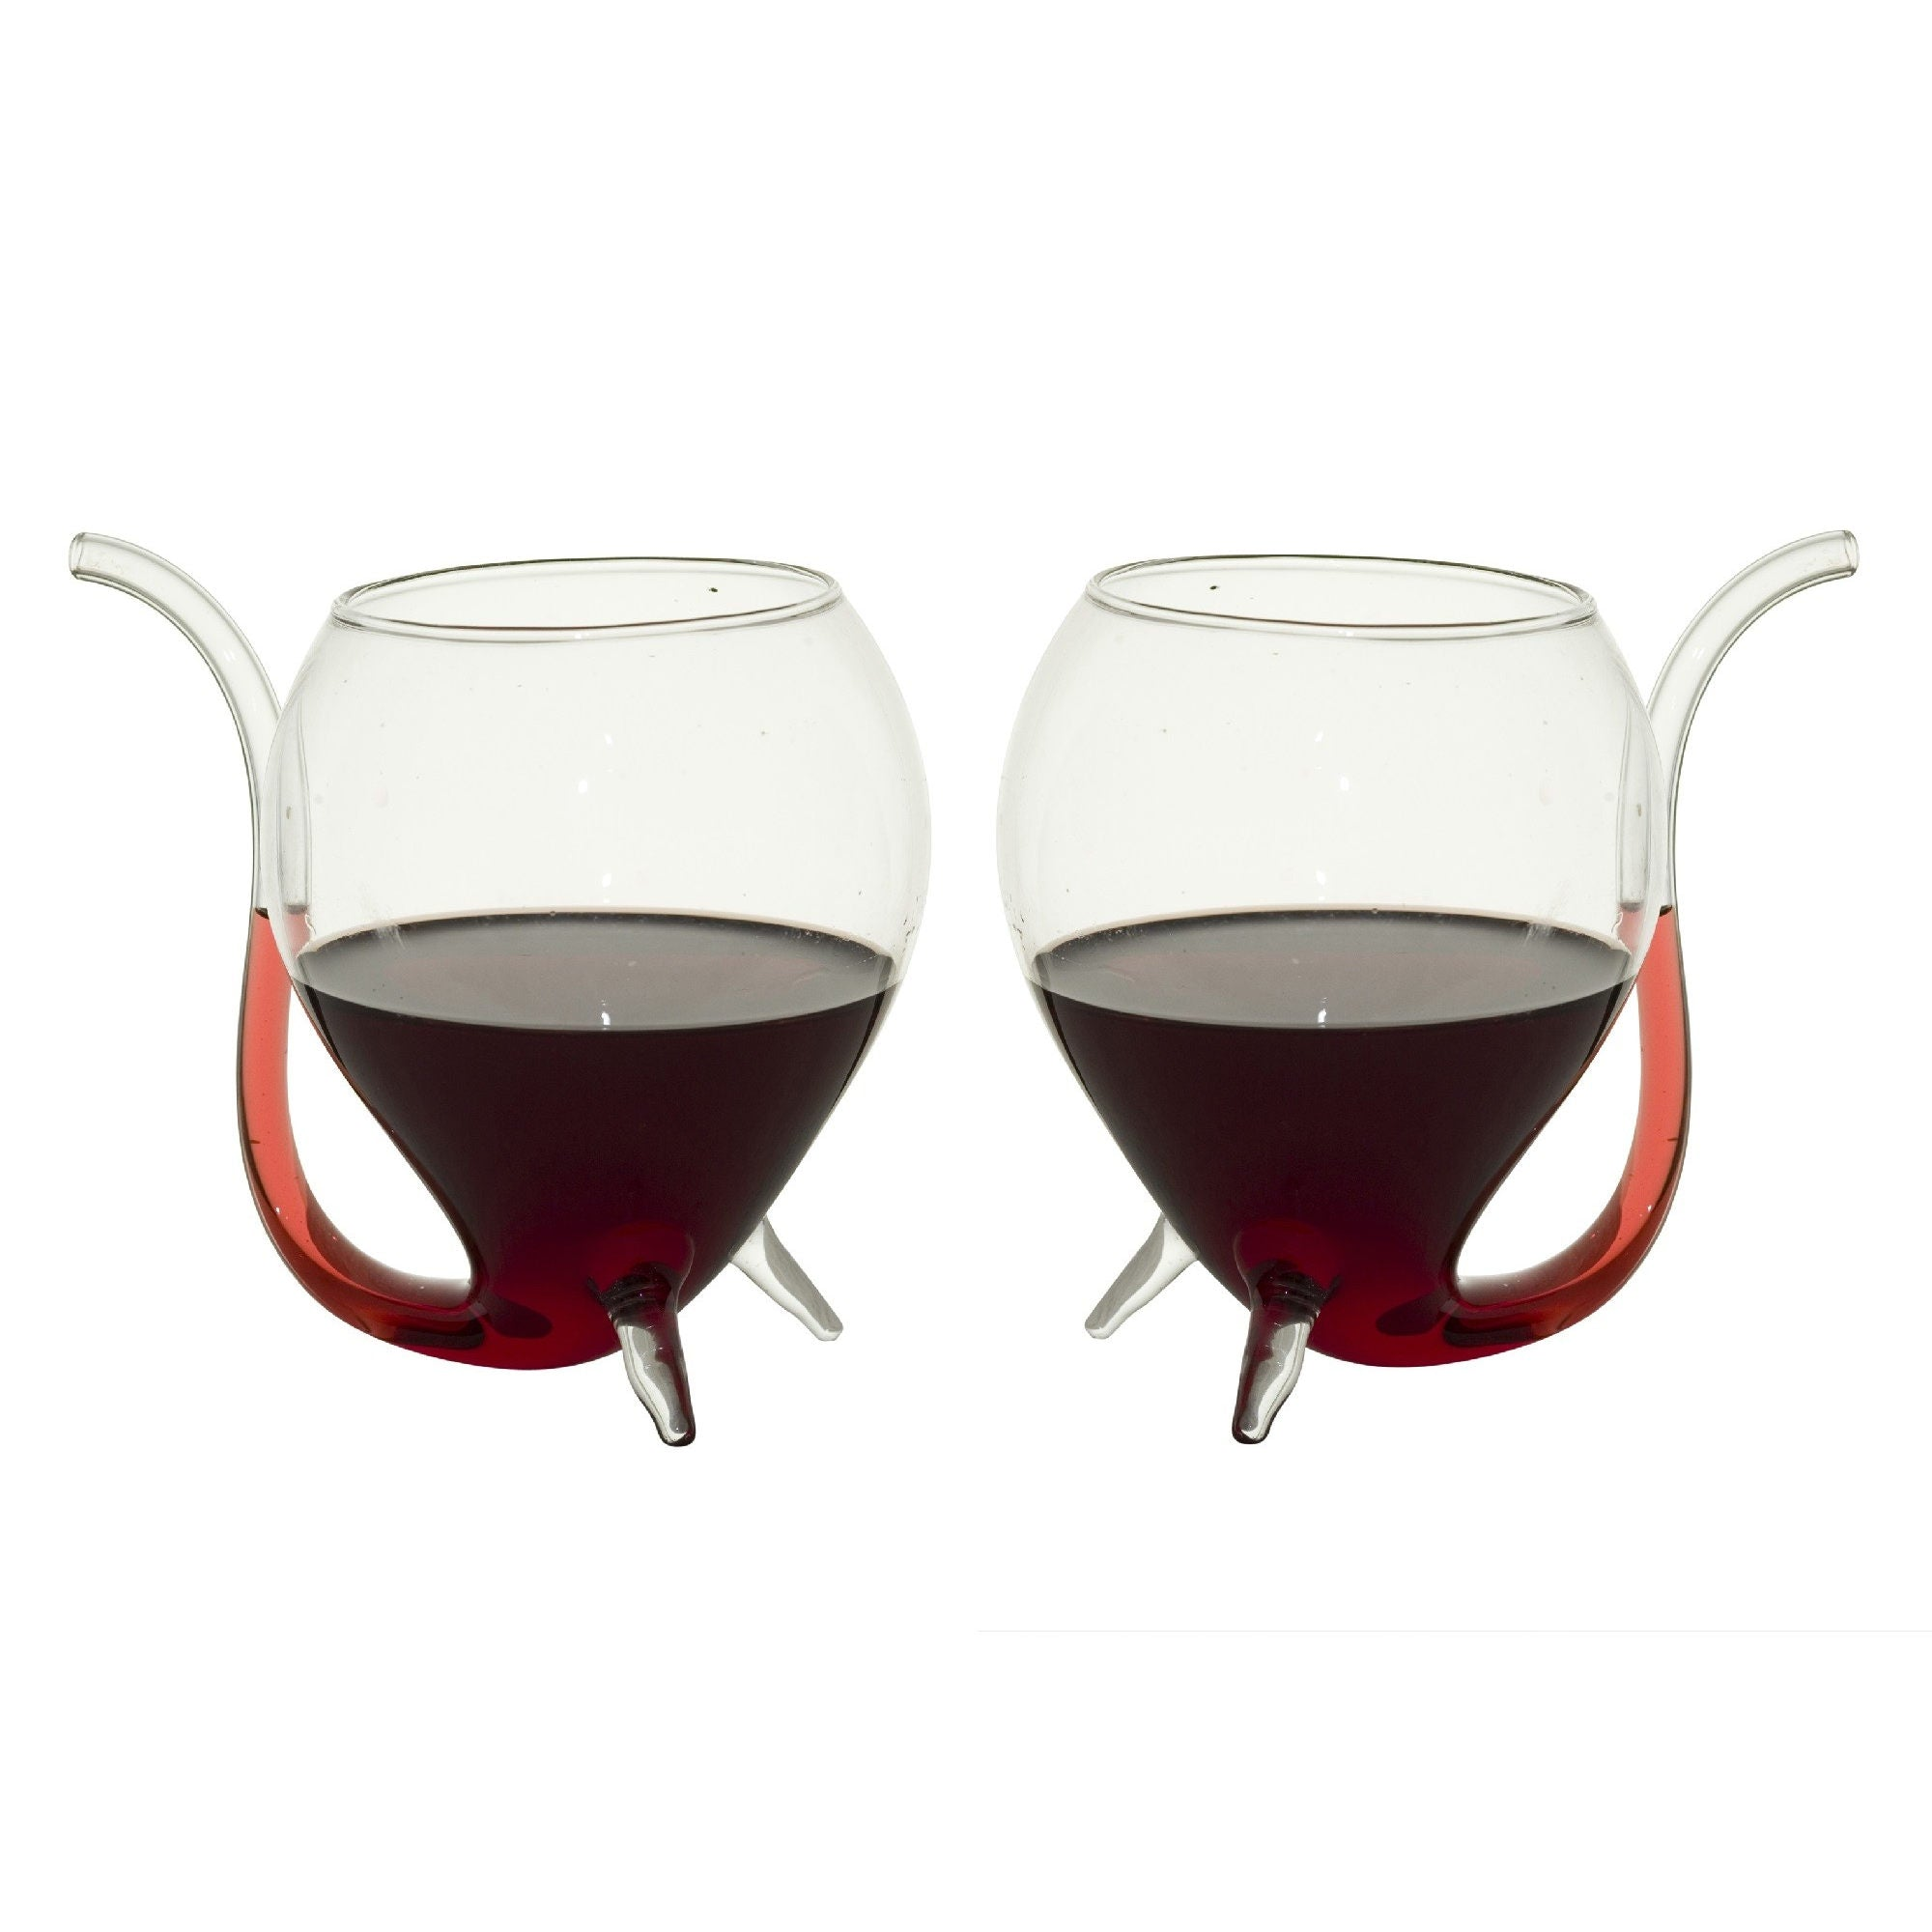 Wine Sippers with Built in Sipping Straws - Set of 2